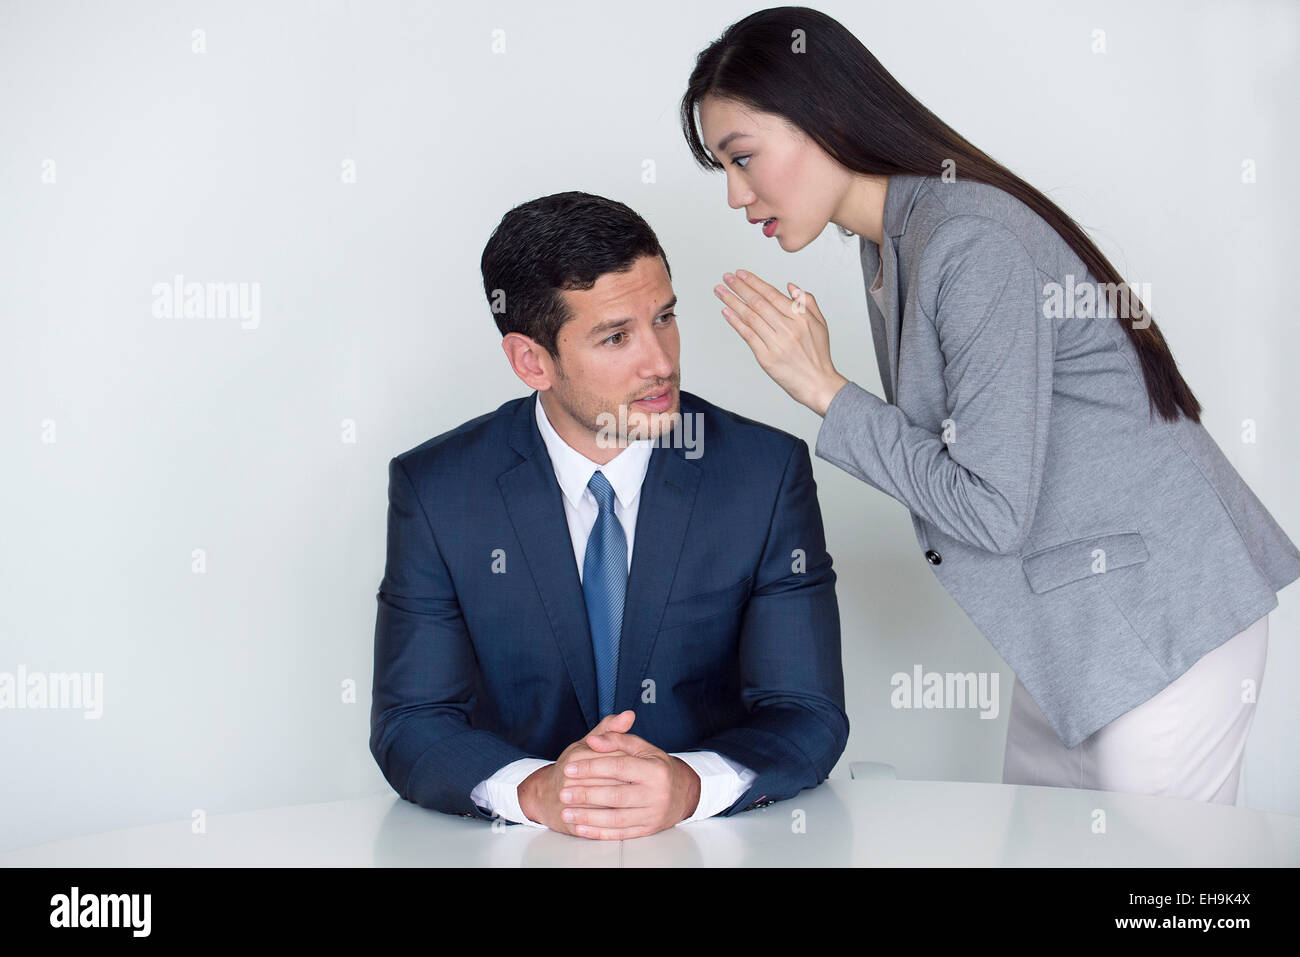 Woman delivering urgent message to executive - Stock Image